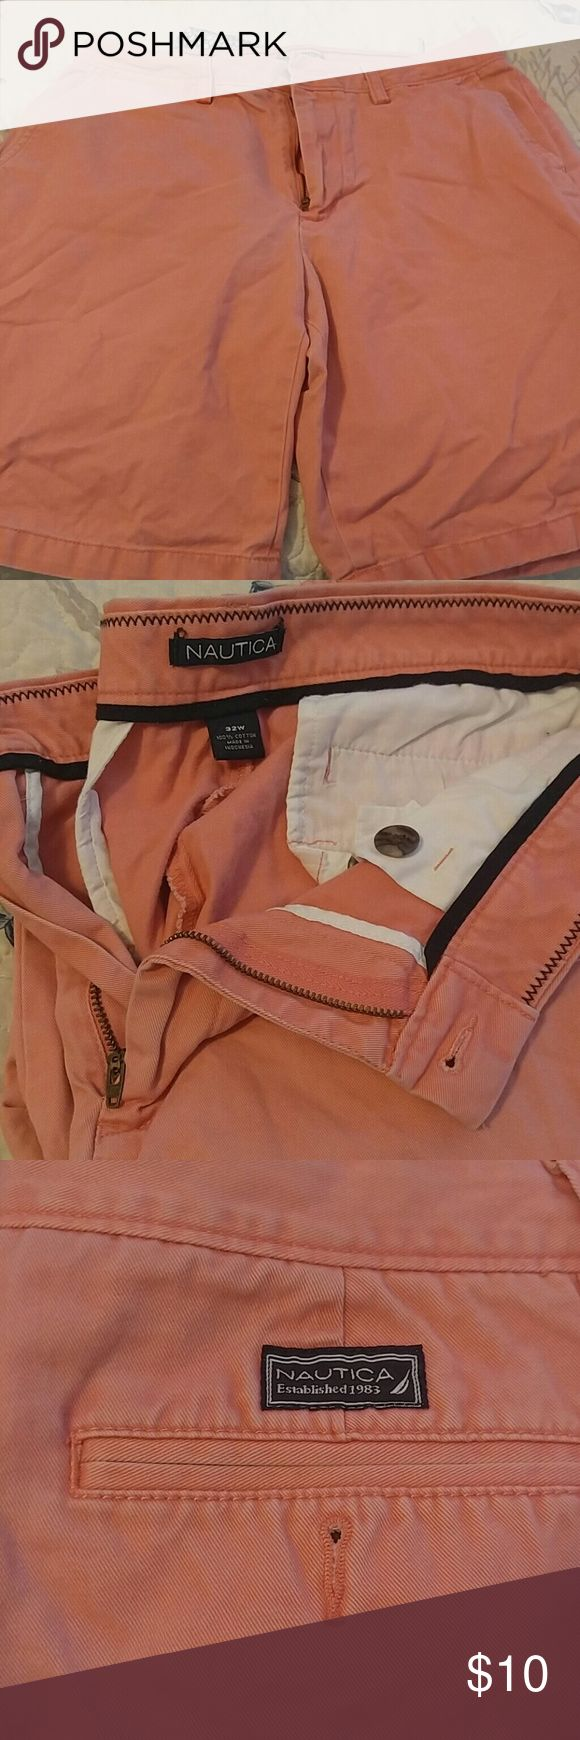 Men's Nautica coral flat front shorts 32w Gently worn mens Nautica coral flat front cotton twill shorts 32w Nautica Shorts Flat Front